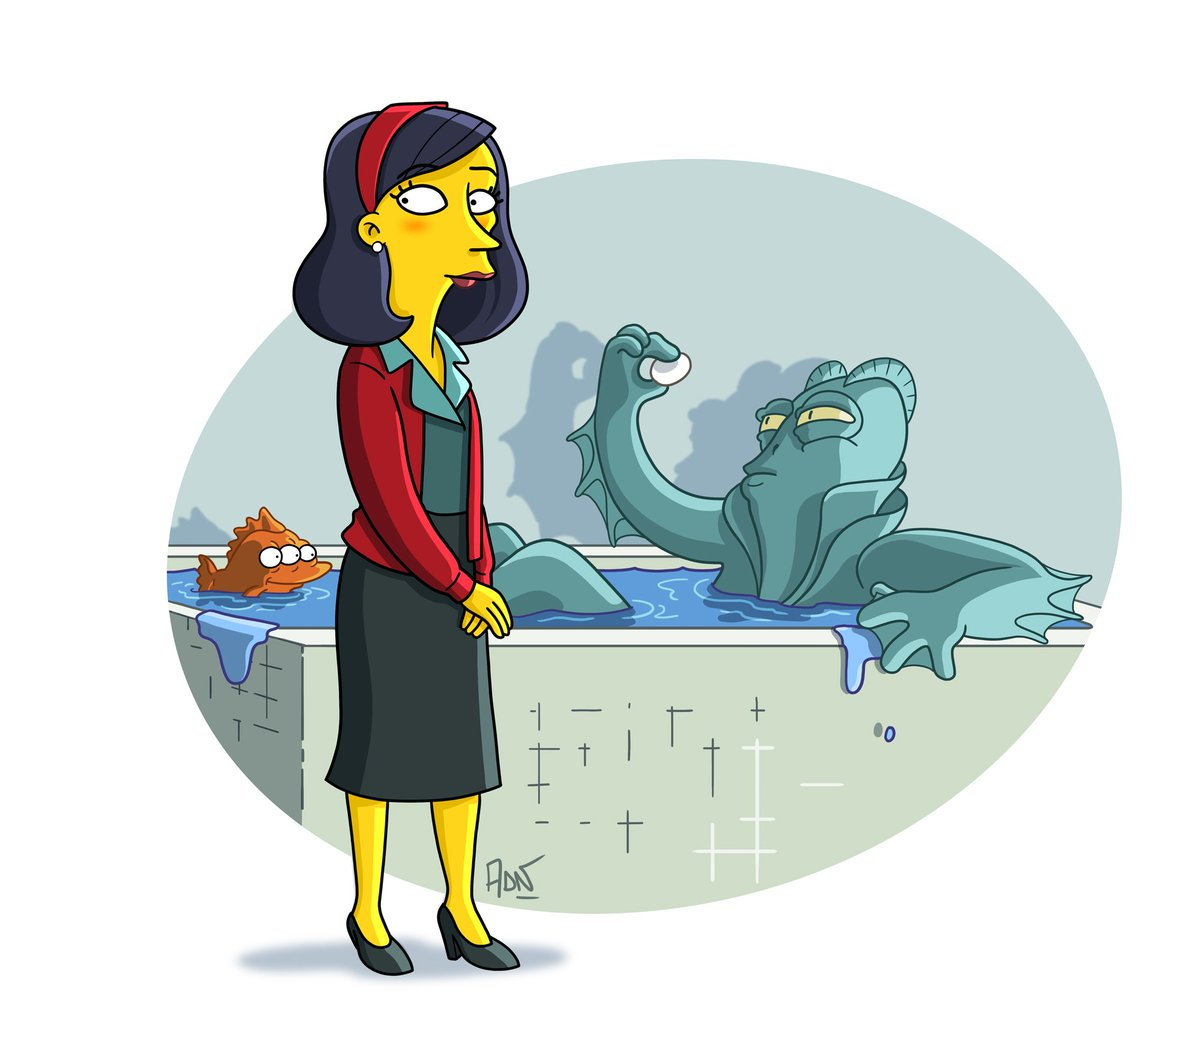 The Shape Of Water #Simpsonized  @shapeofwater @RealGDT #TheShapeofWater #illustration 🌊